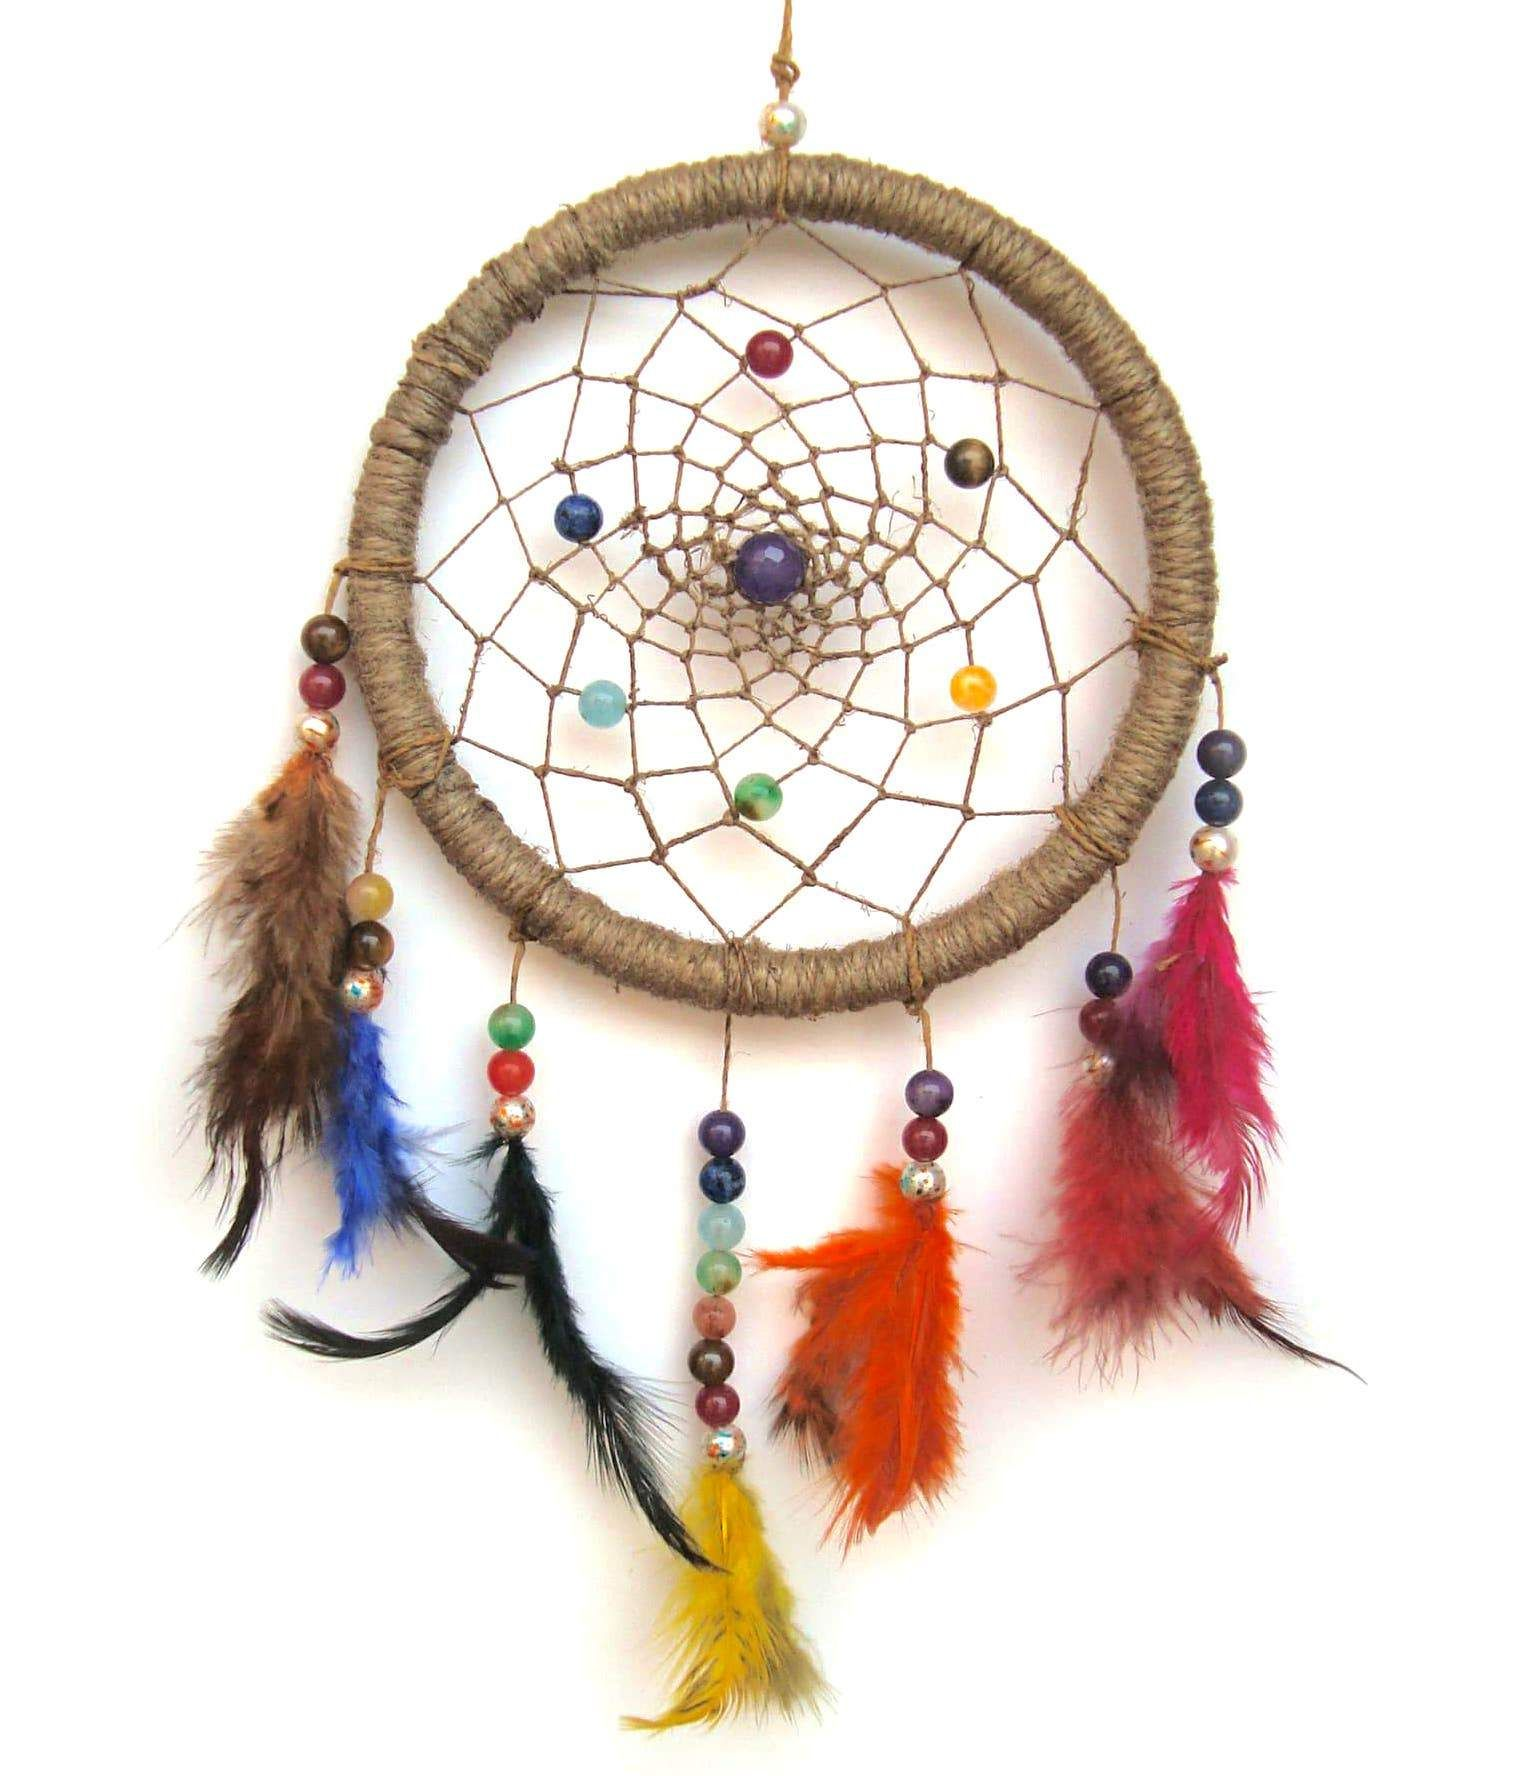 7 Chakra Dream Catcher images